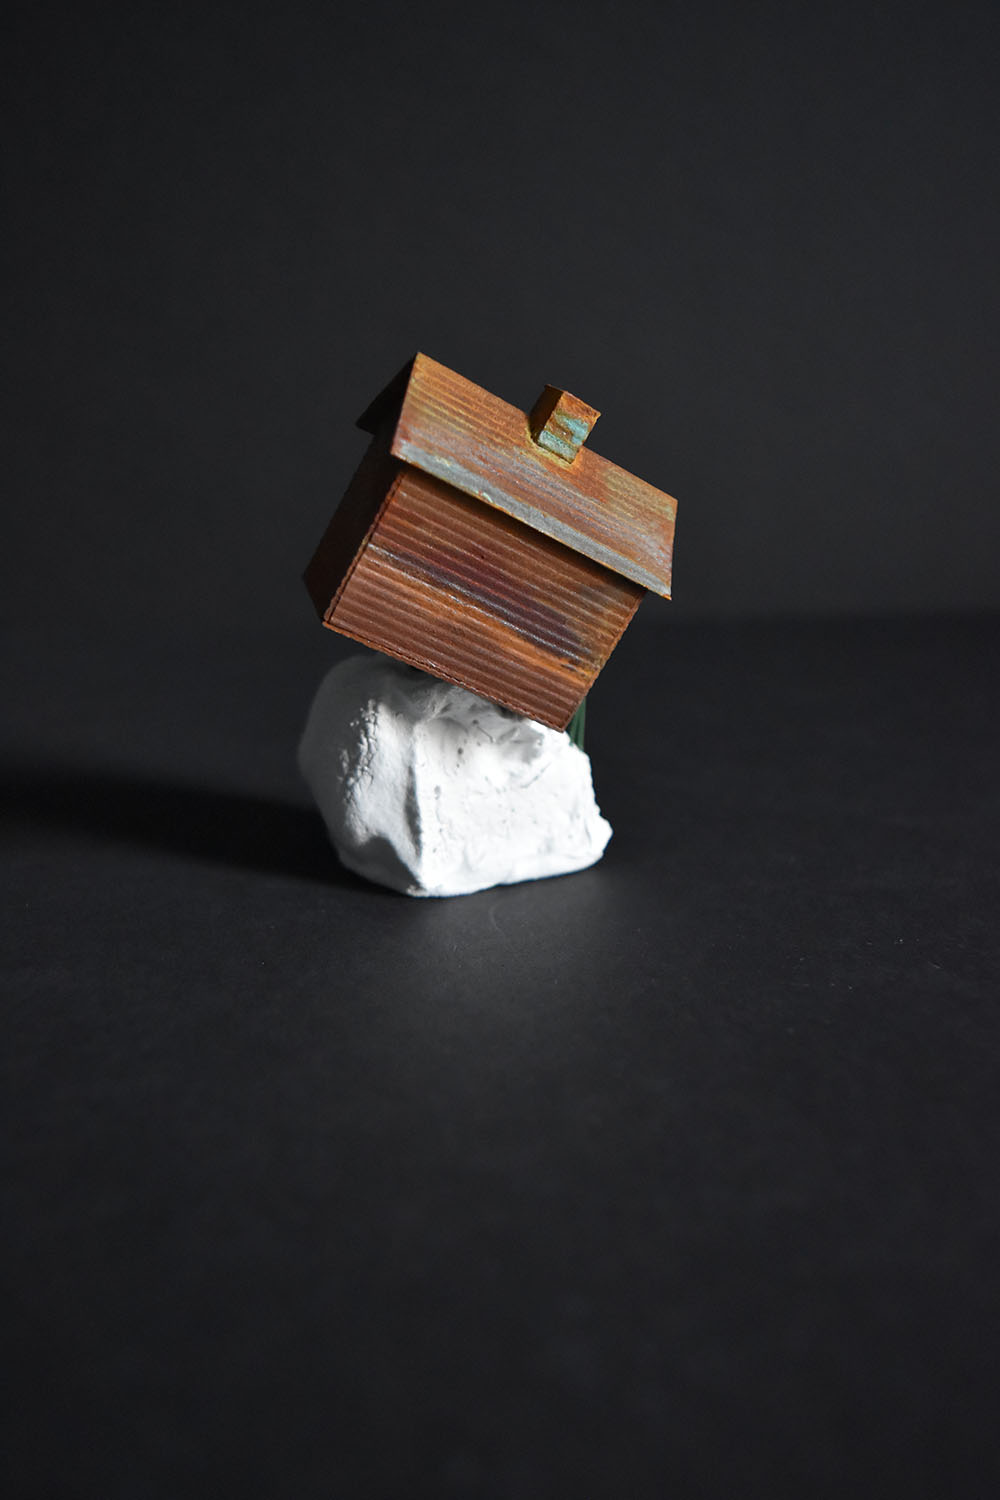 Tatiana Flis,  Precarious Ledge , Wood, plastic, and mixed-media, 3 x 2 x 2.5 inches